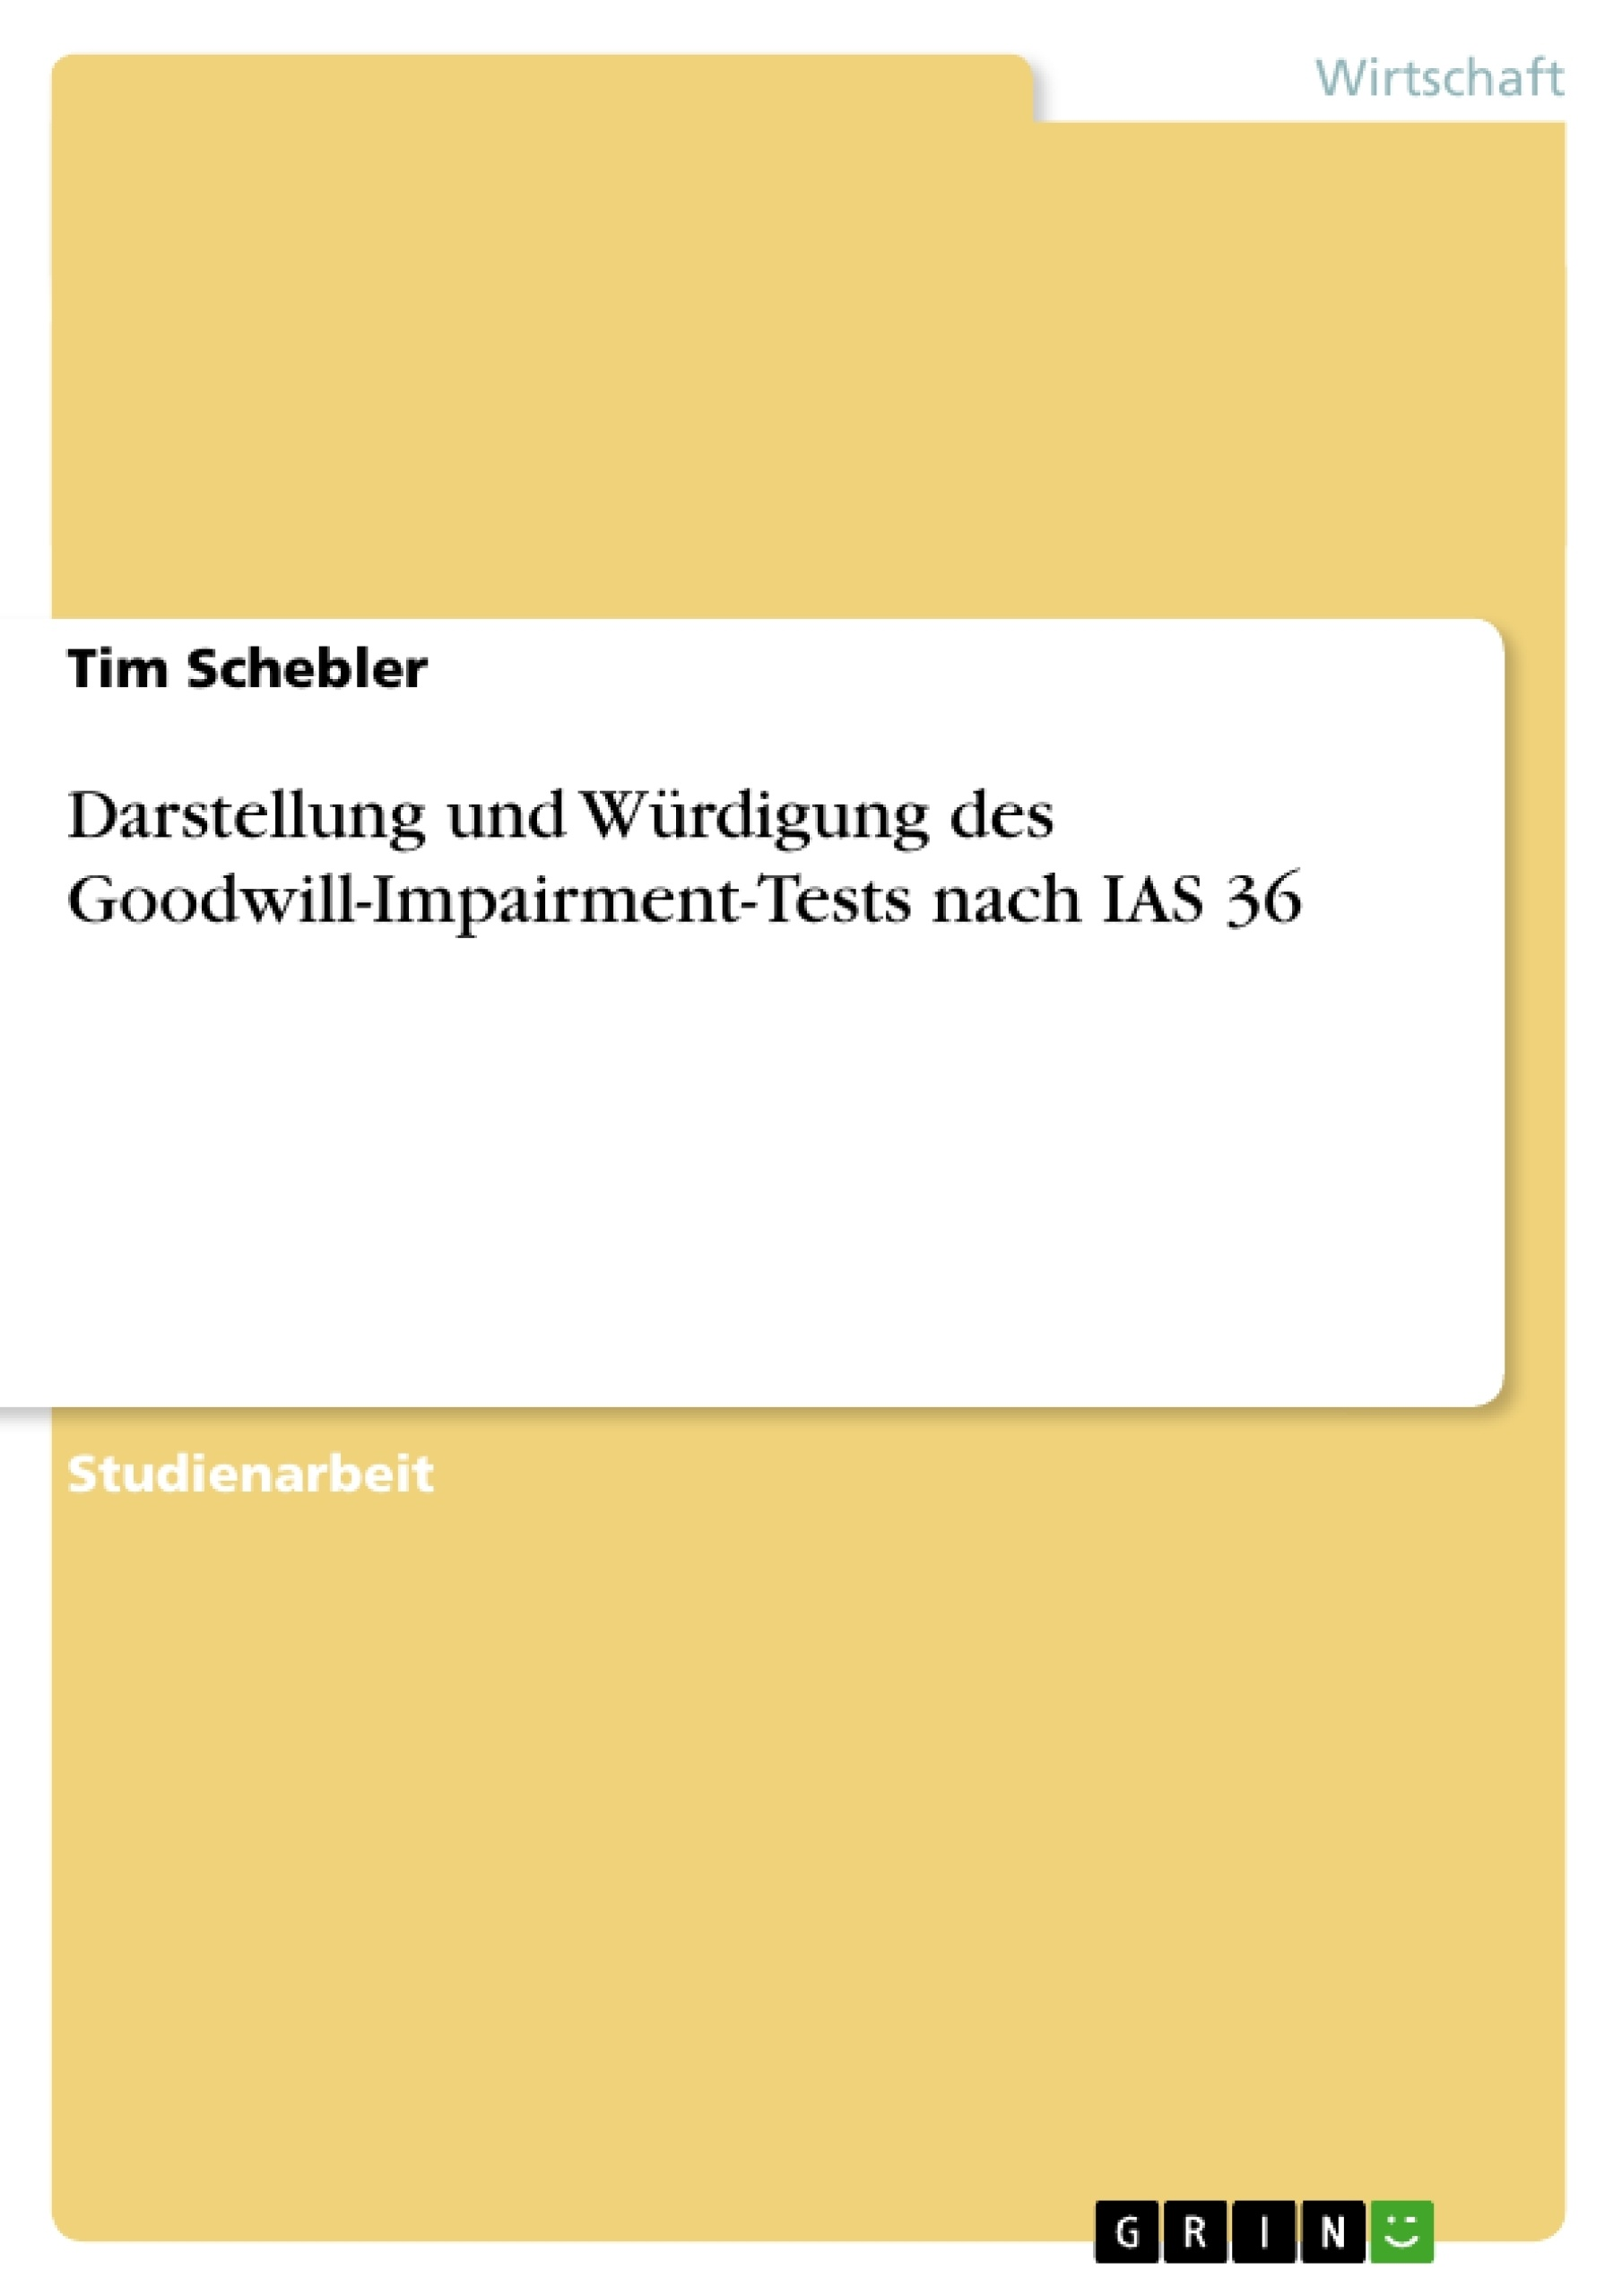 goodwill impairment testing essay The financial accounting standards board (fasb) issued new guidance that is aimed to make goodwill impairment testing easier for companies, and this.